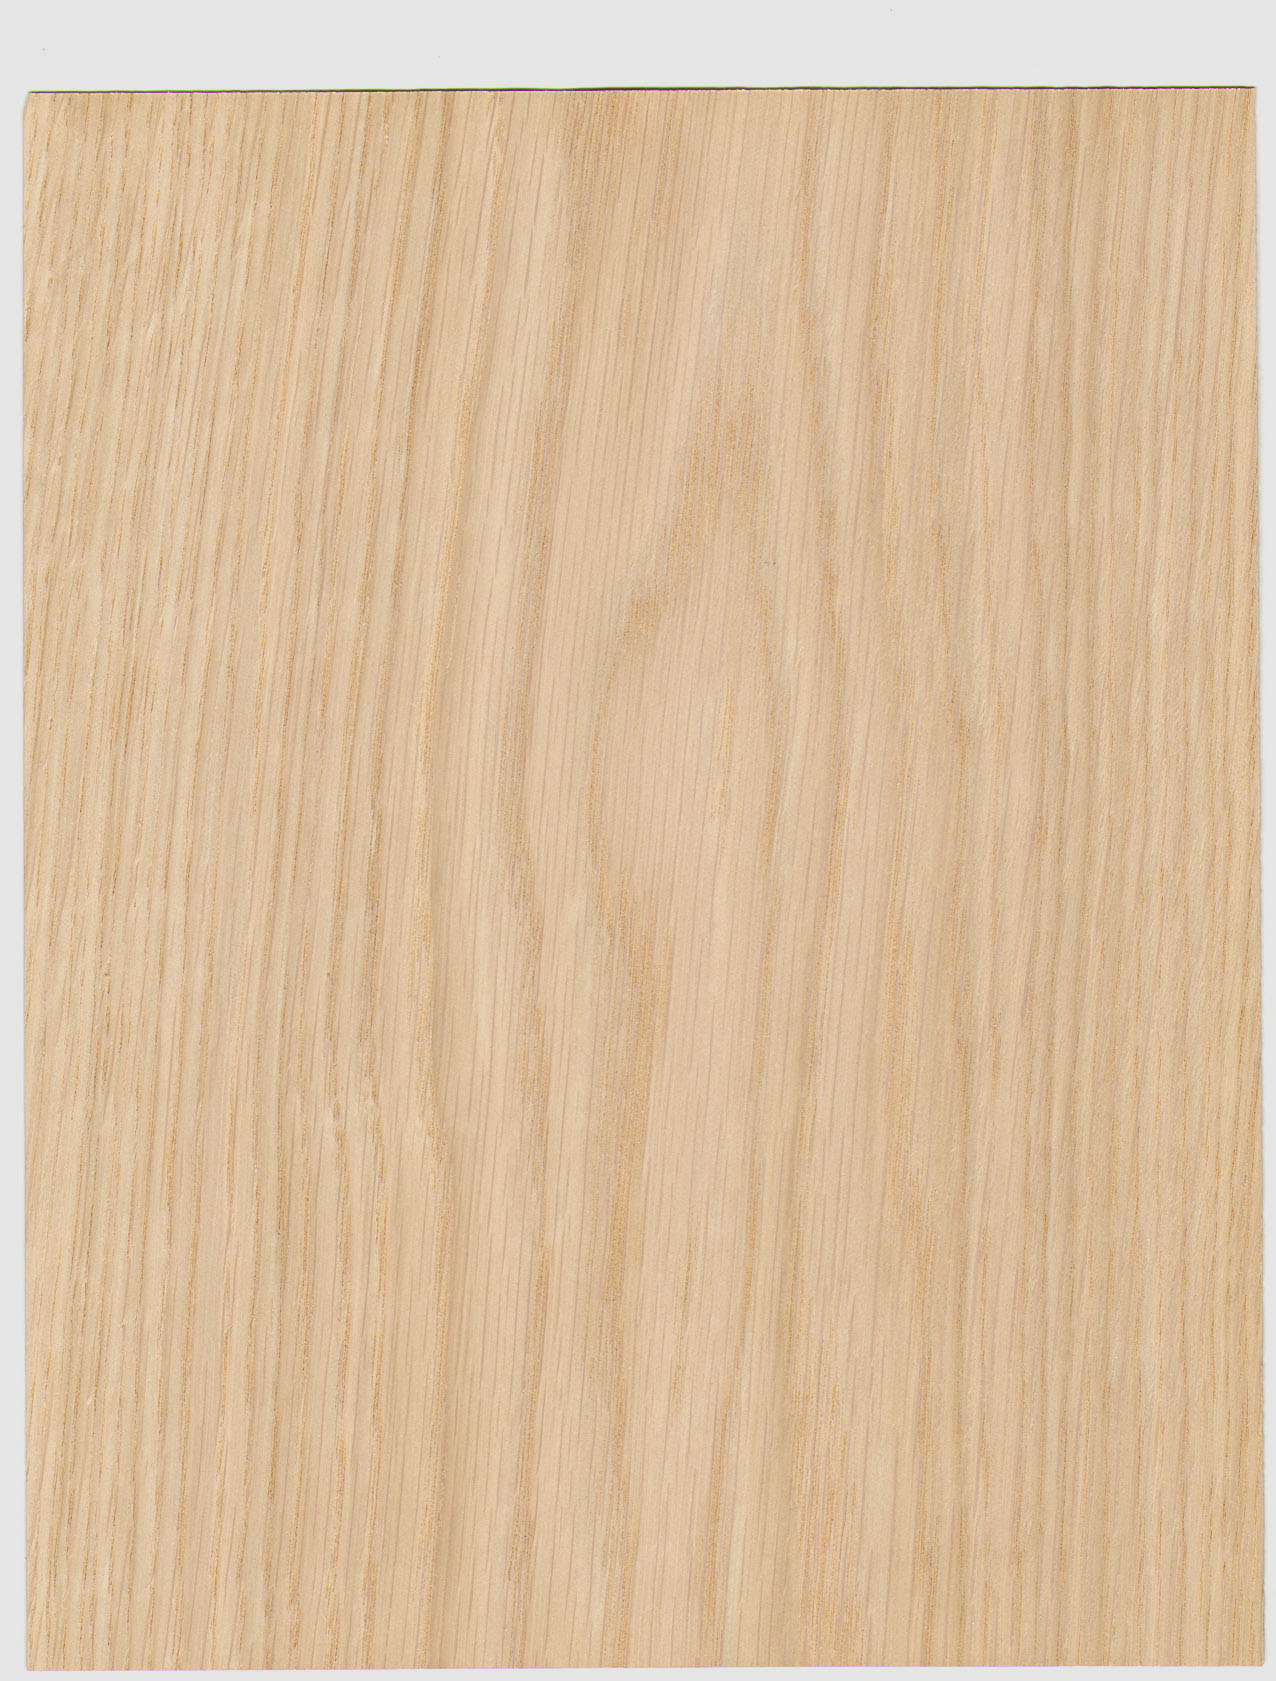 Wood texture laminate download photo background wood for Hd laminate flooring